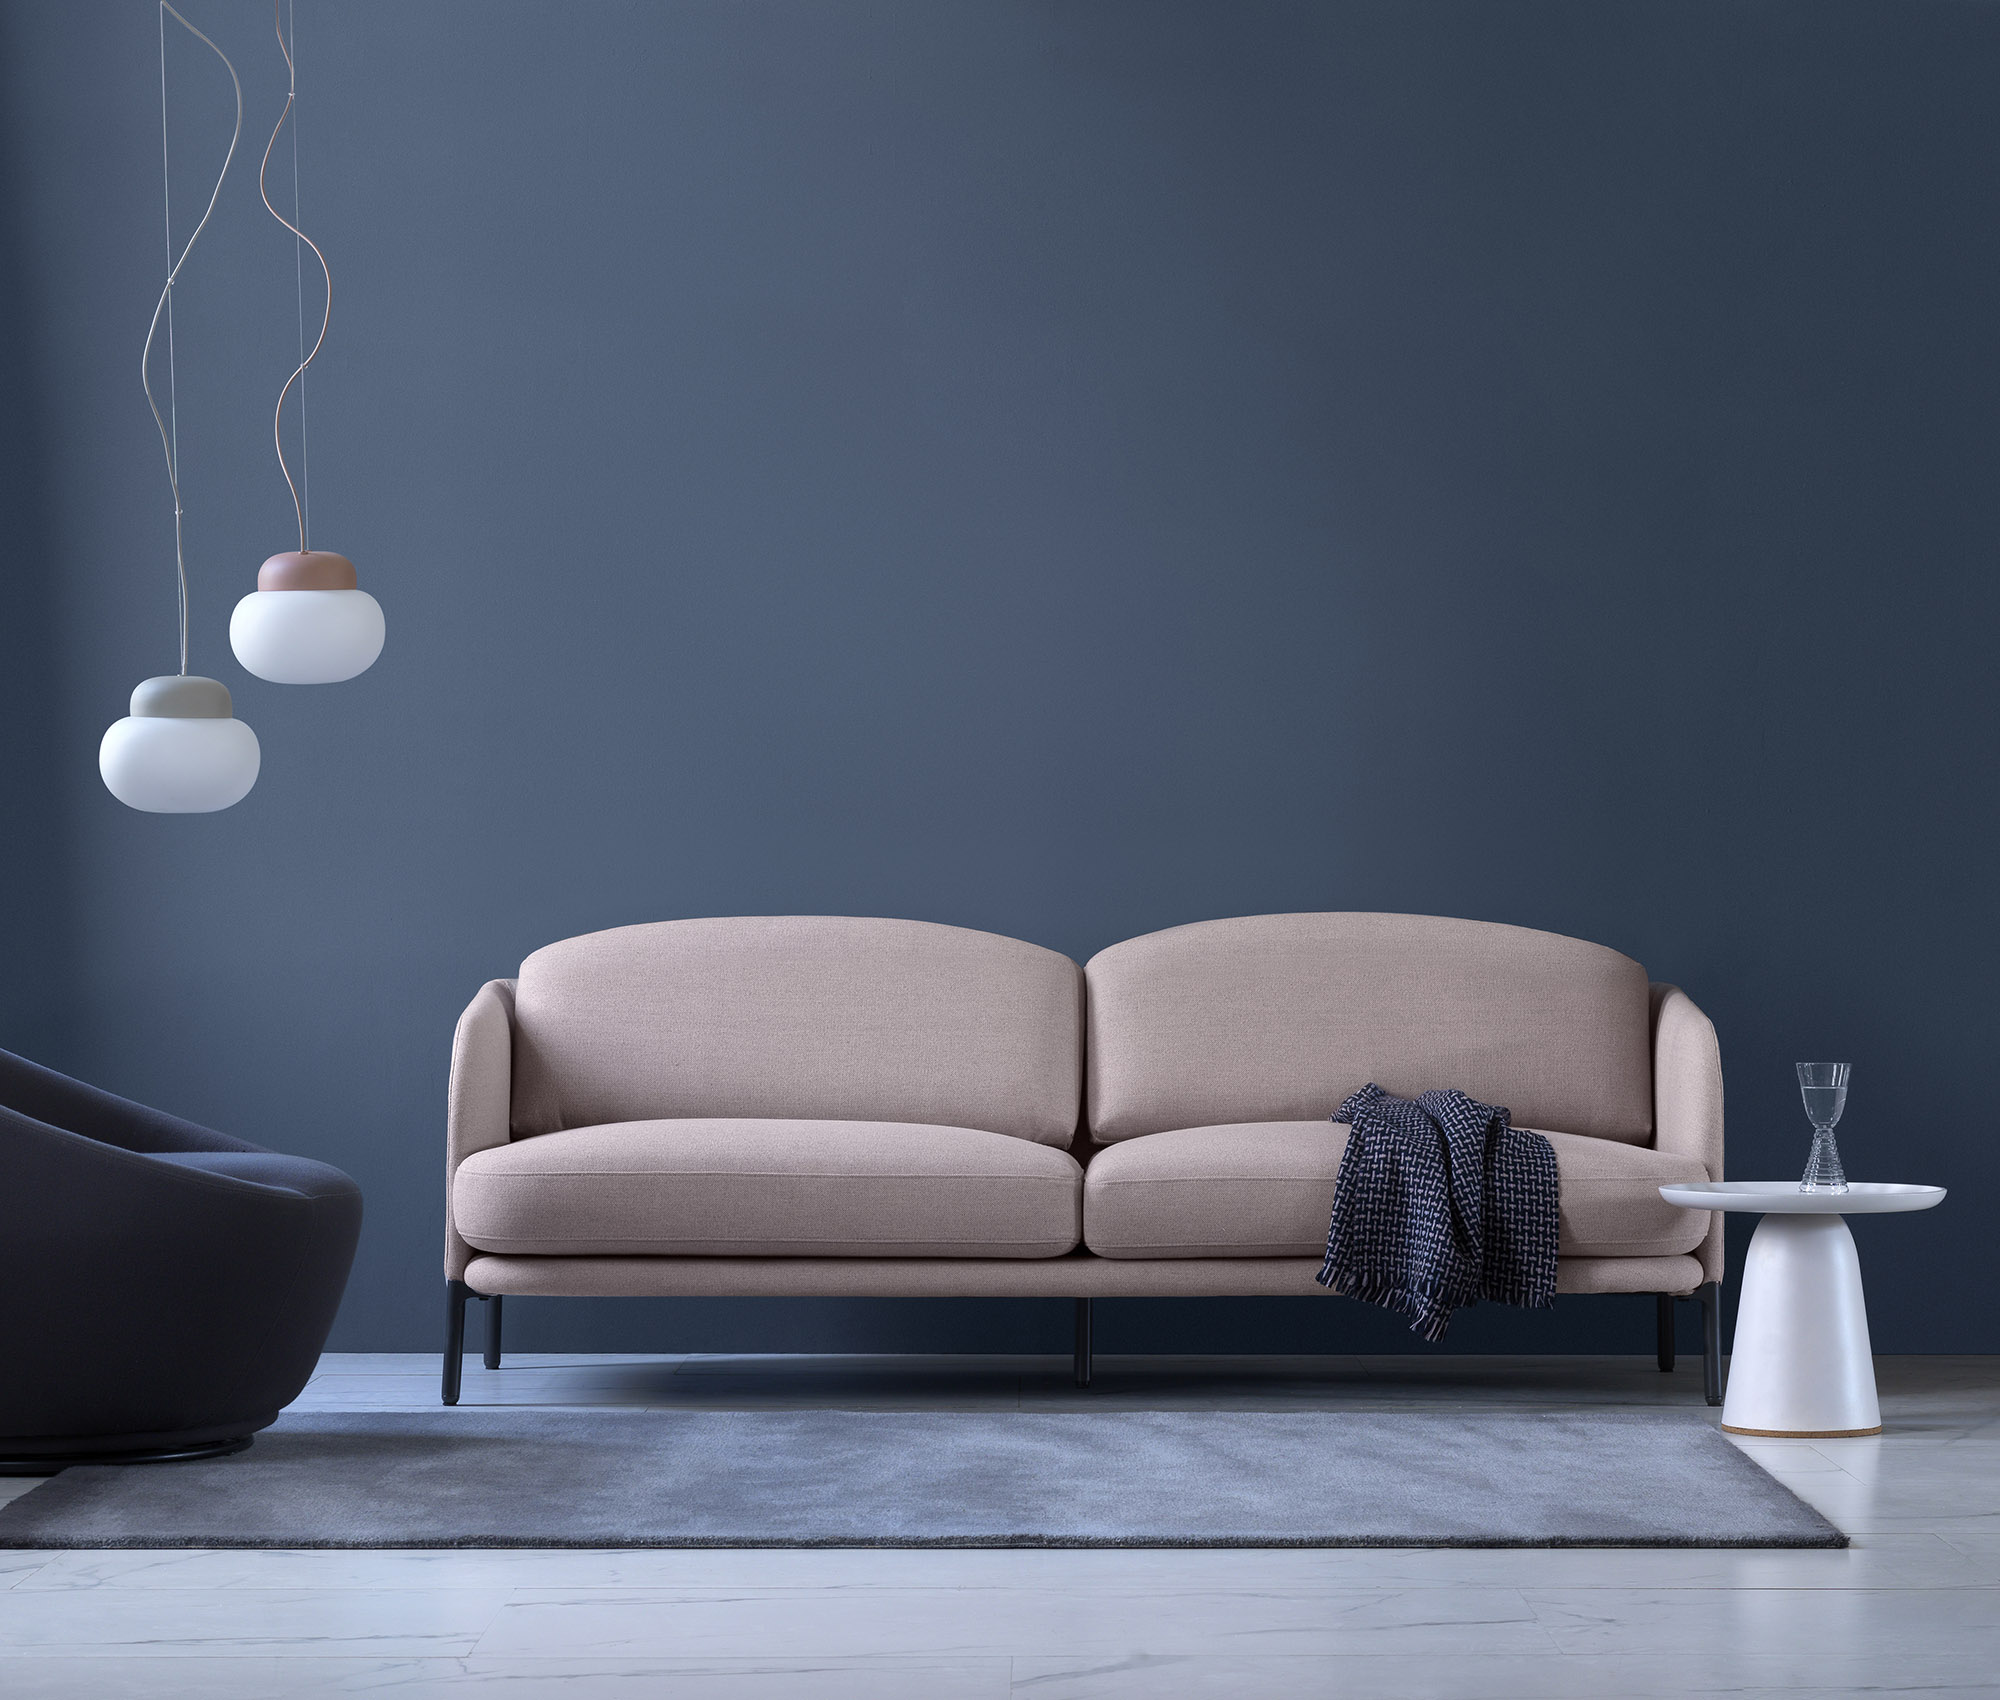 Plume Sofa Collection (2019)